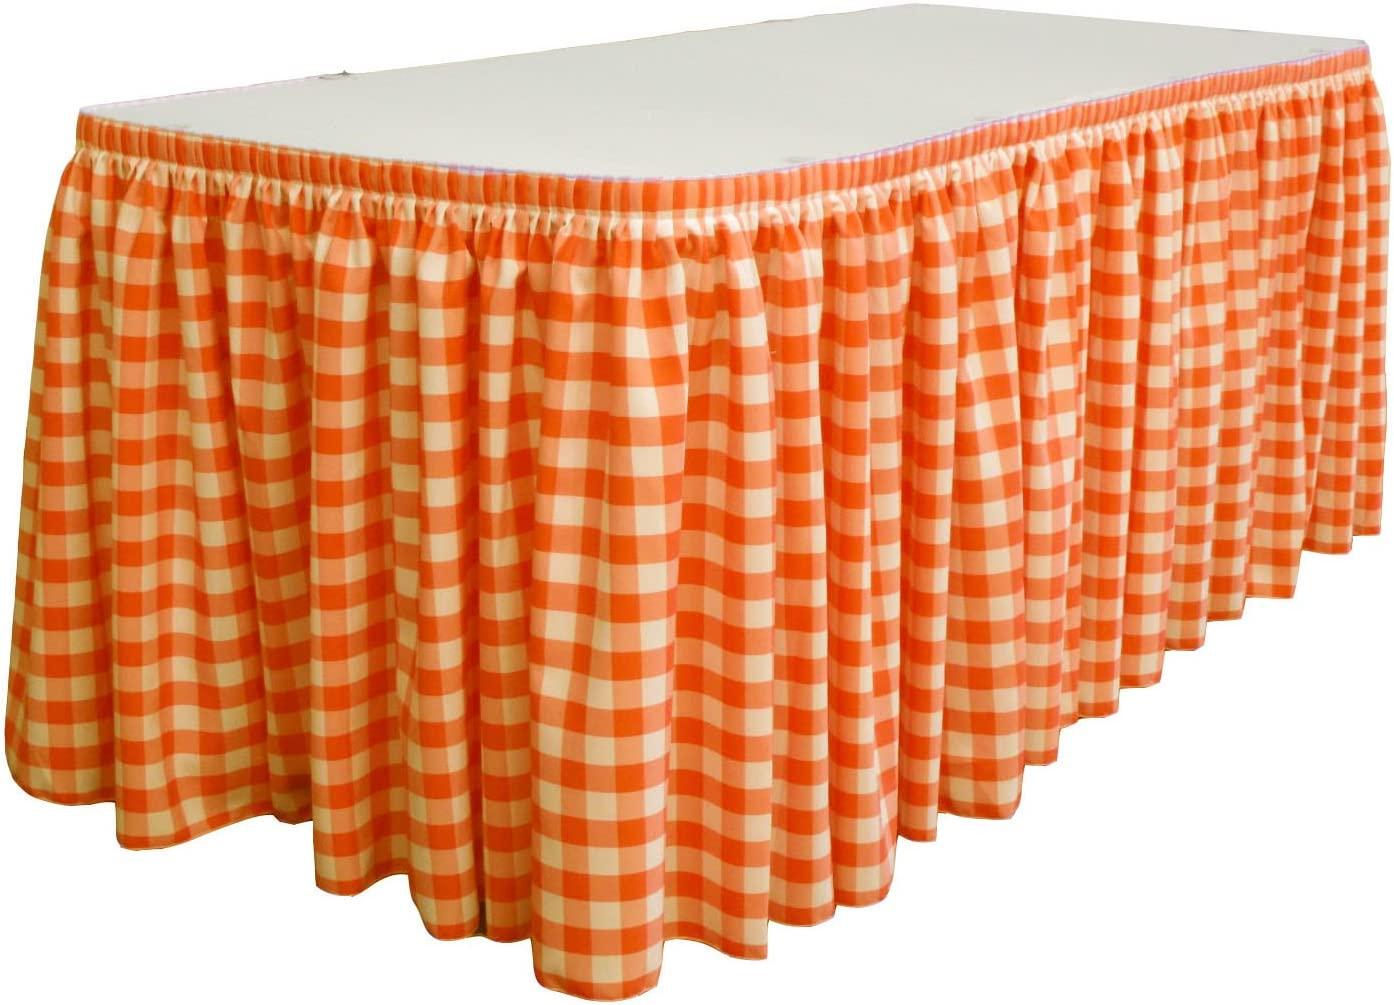 LA Linen Oversized Checkered Gorgeous Table Skirt with Latest item 30' 15 x L-Clips